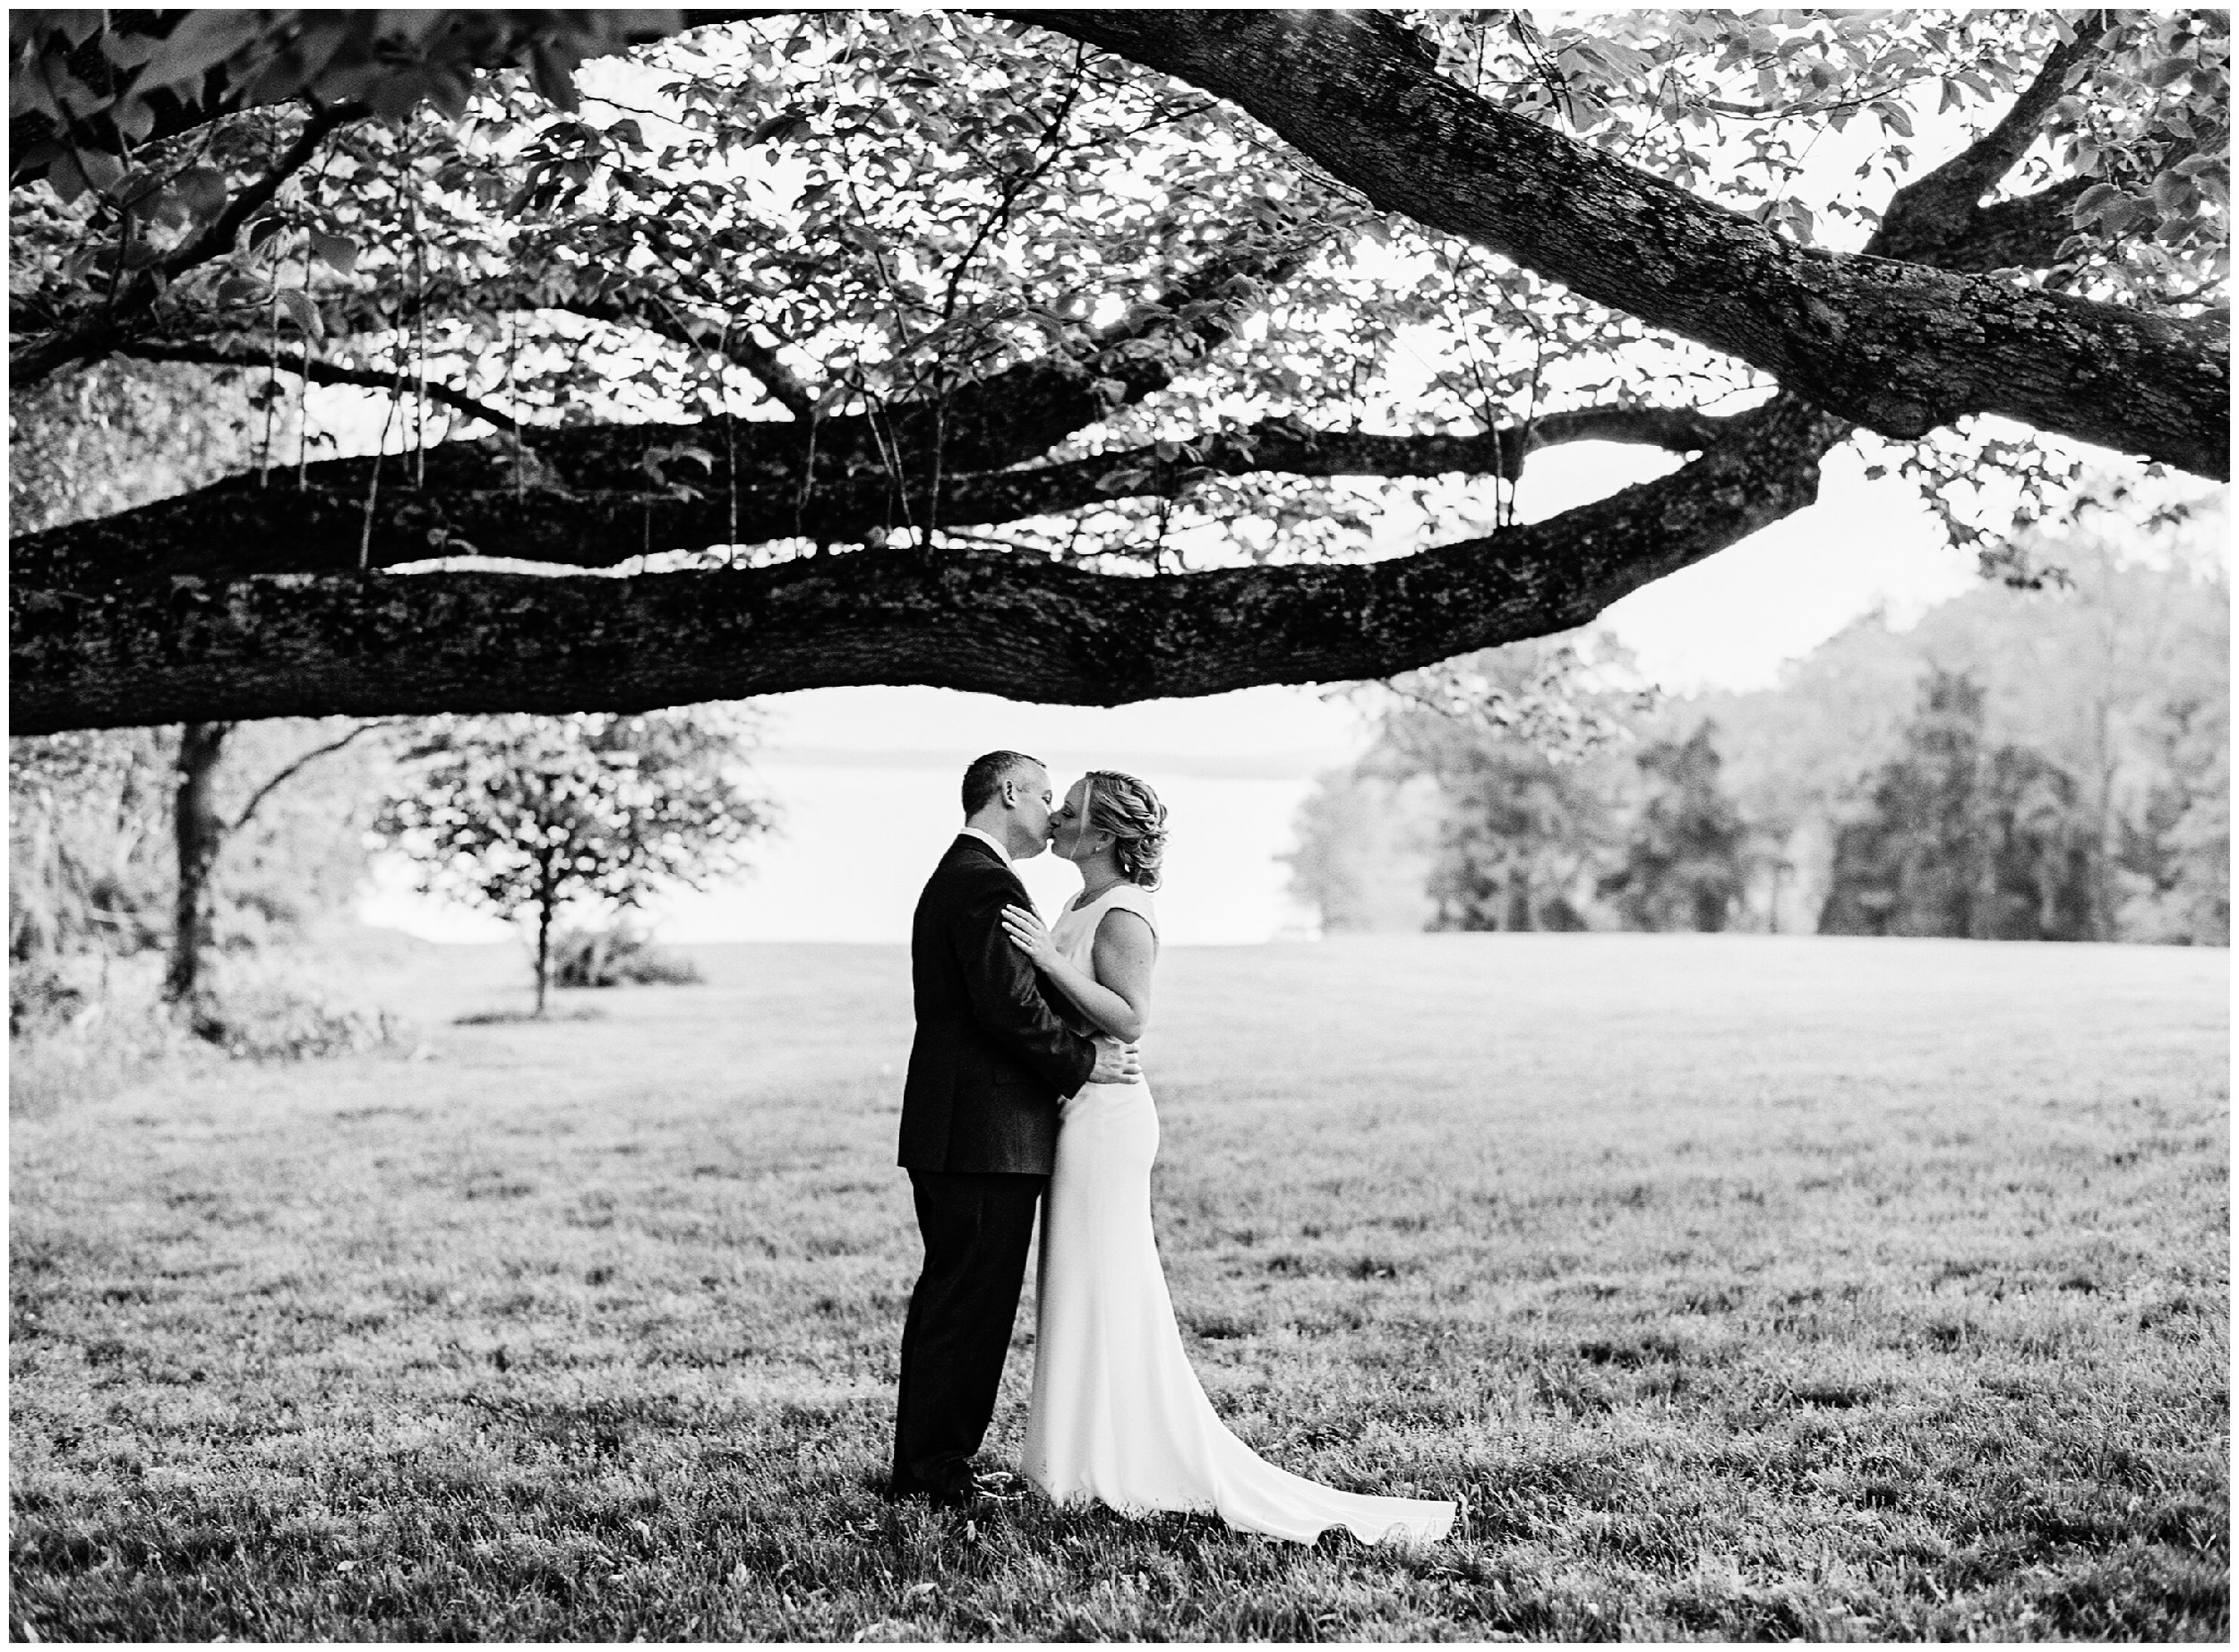 newlyweds kissing under giant tree